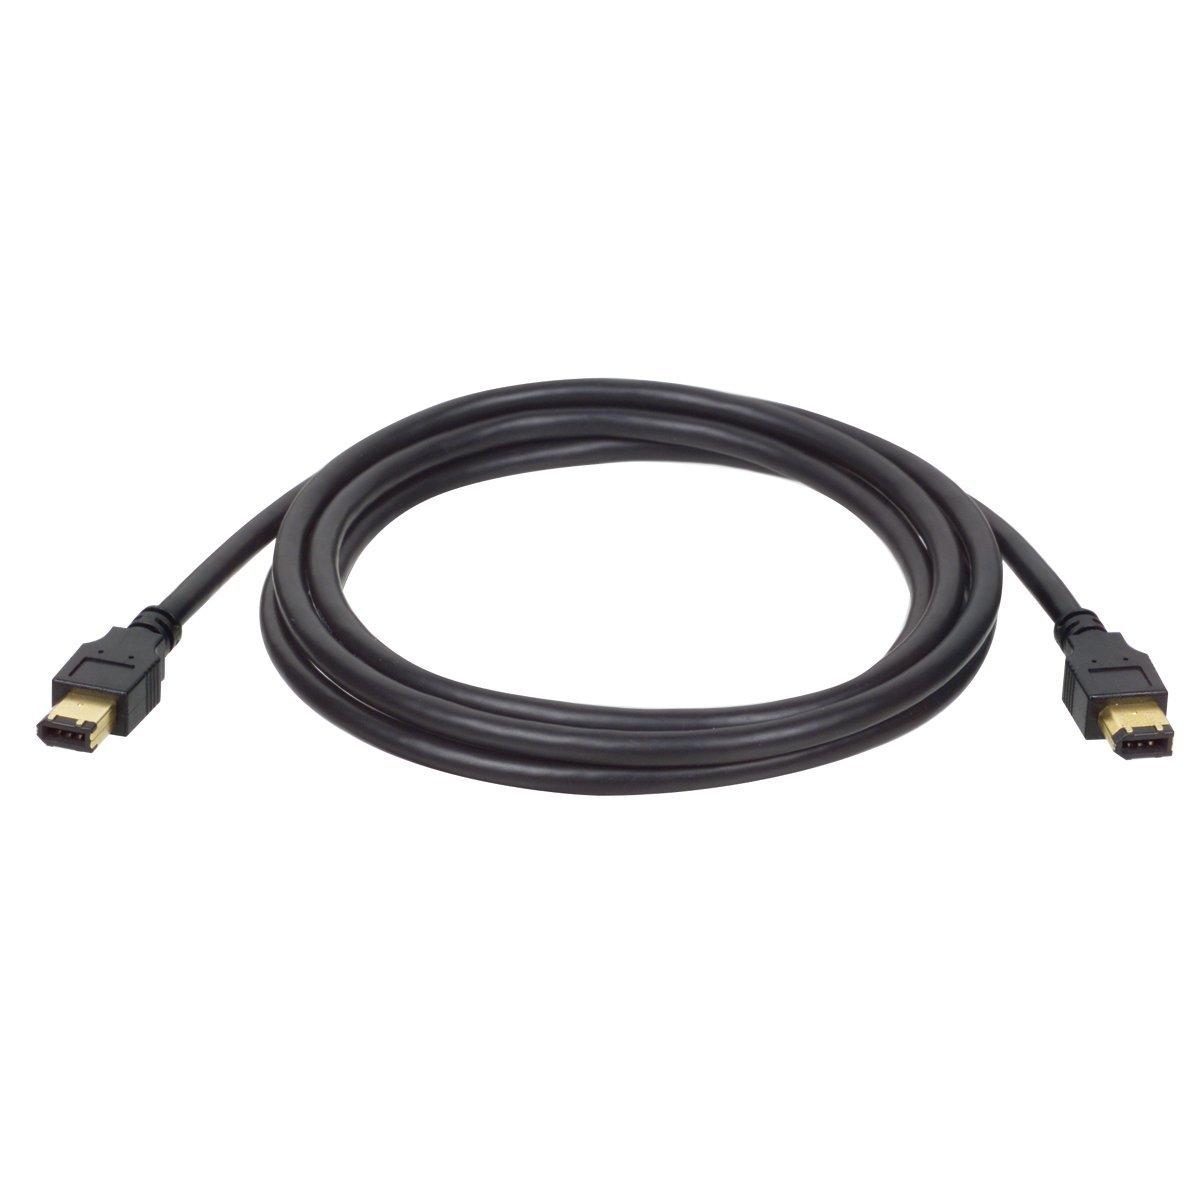 Tripp Lite FireWire IEEE 1394 Cable (6pin/6pin) 15-ft.(F005-015) by Tripp Lite